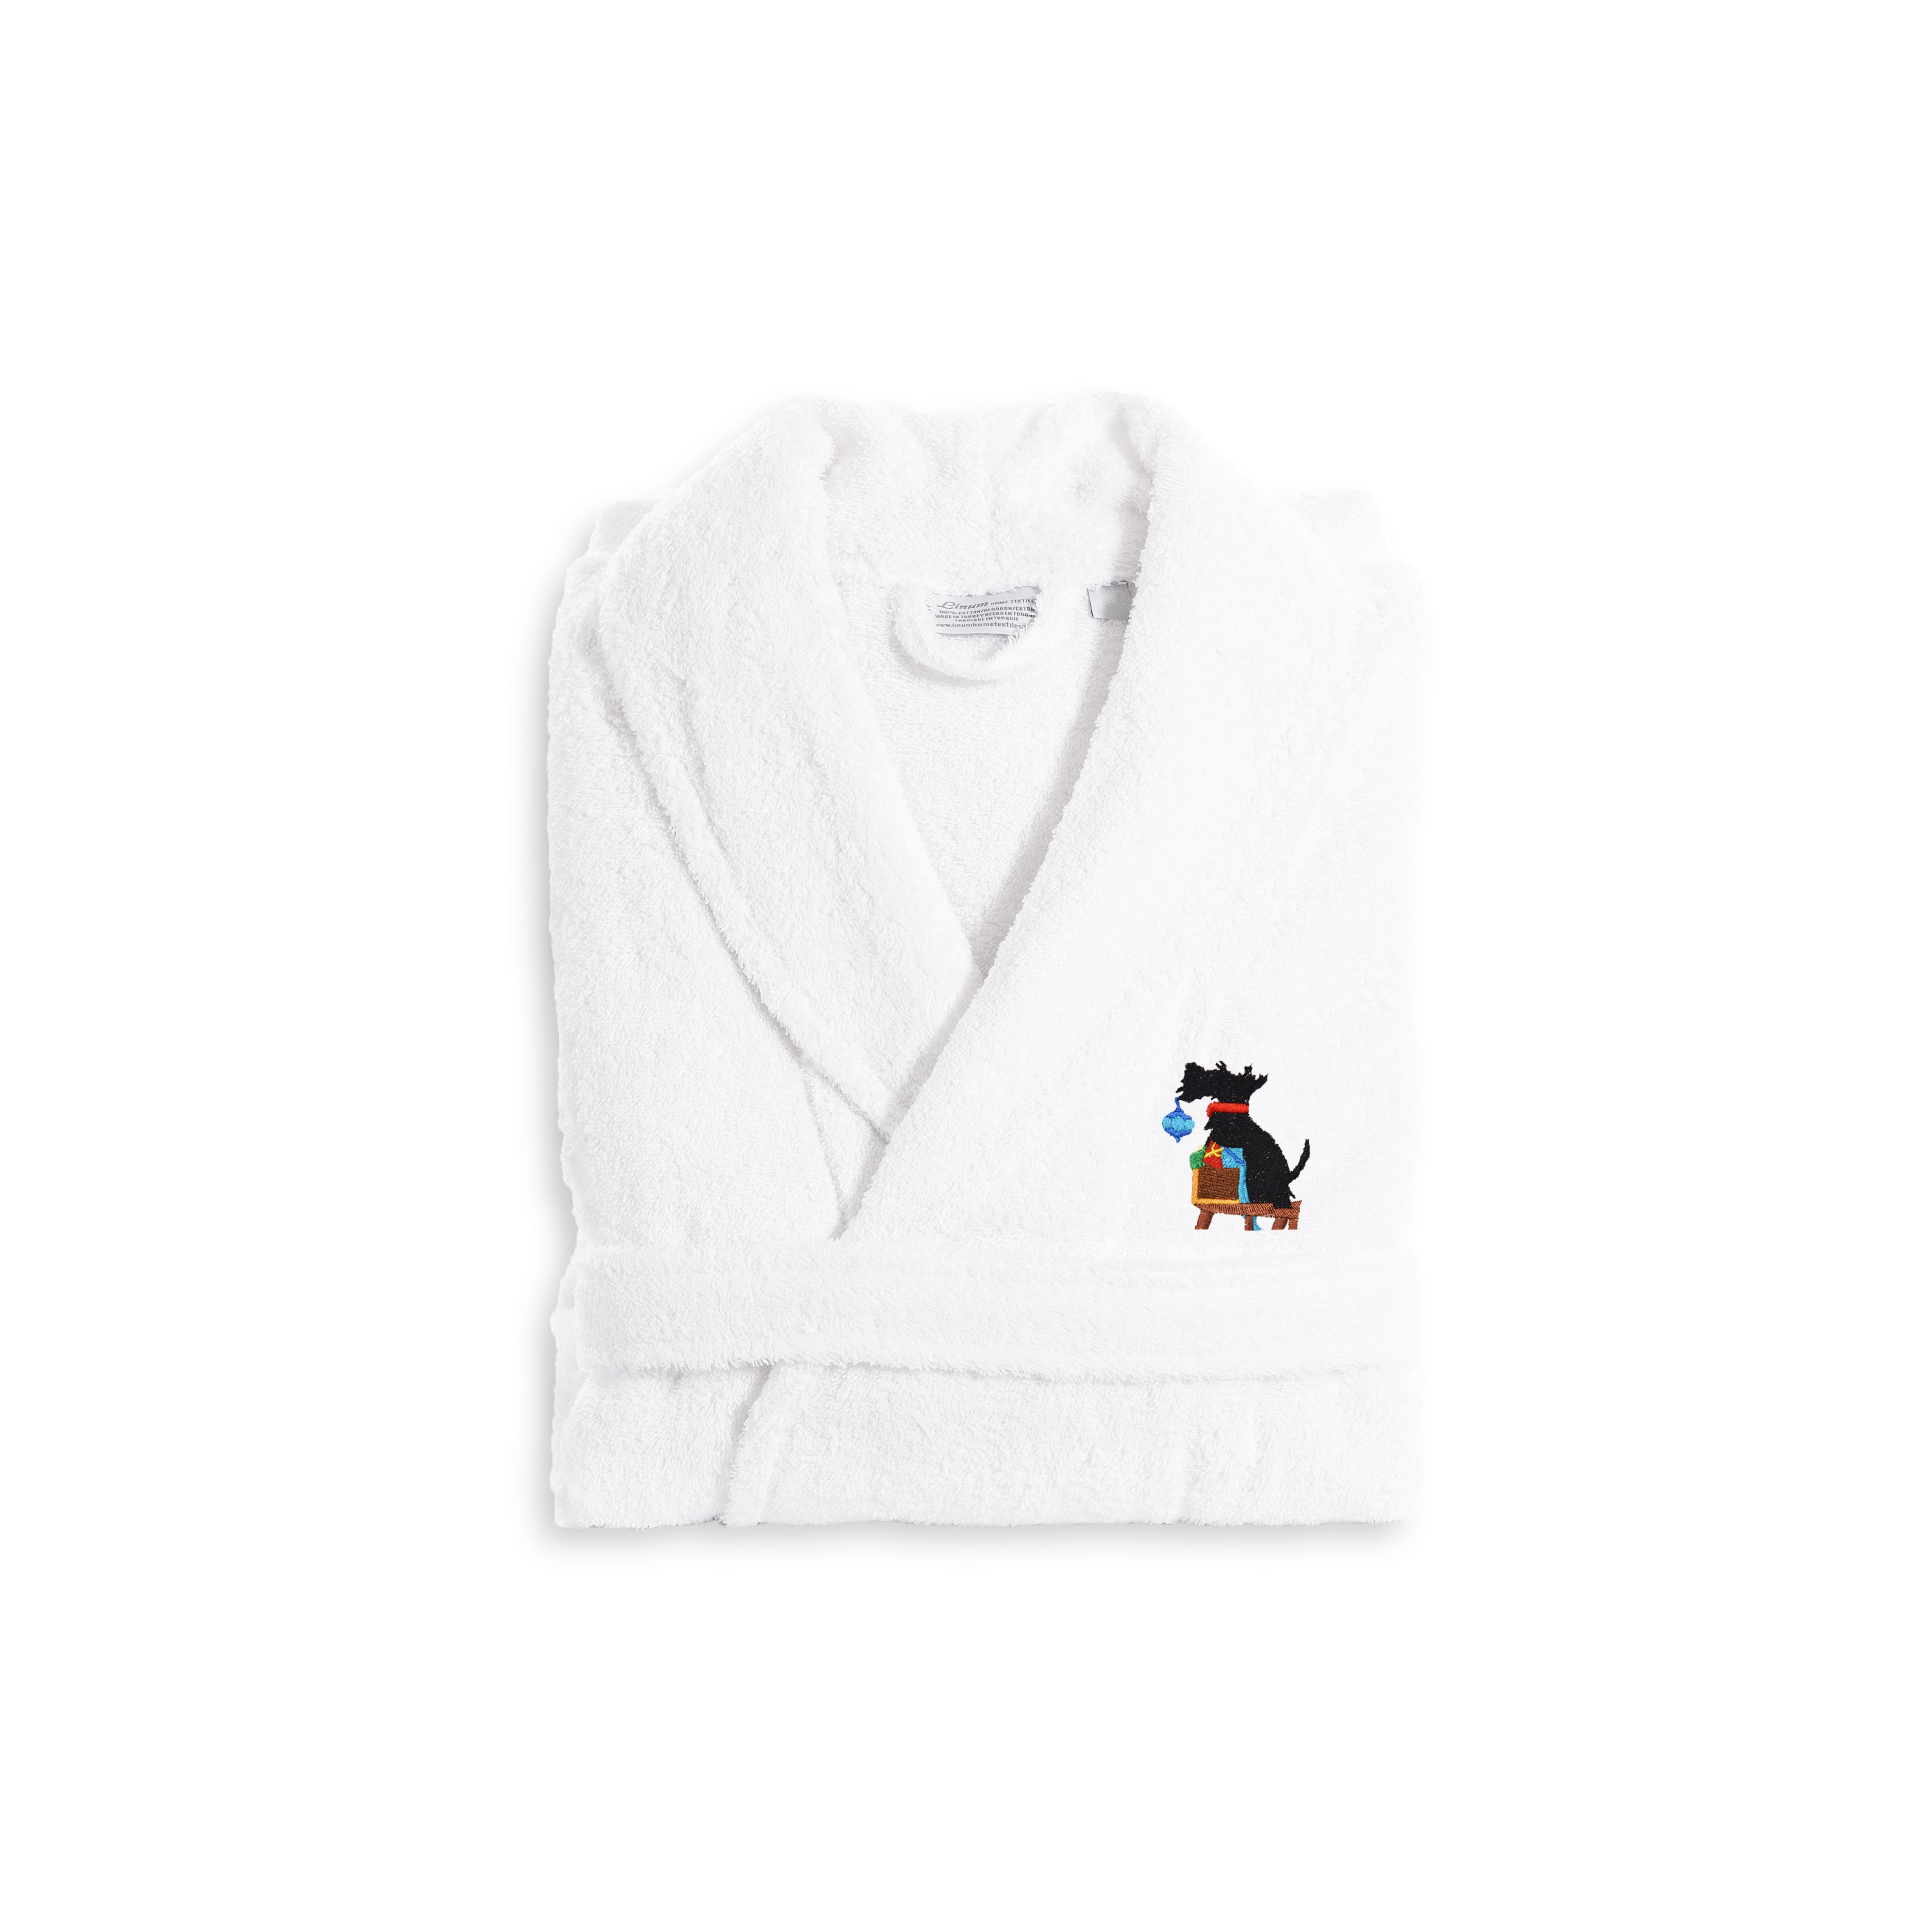 01aabdd506 Authentic Hotel and Spa Holiday Scottie Dog Terry Cloth Turkish ...